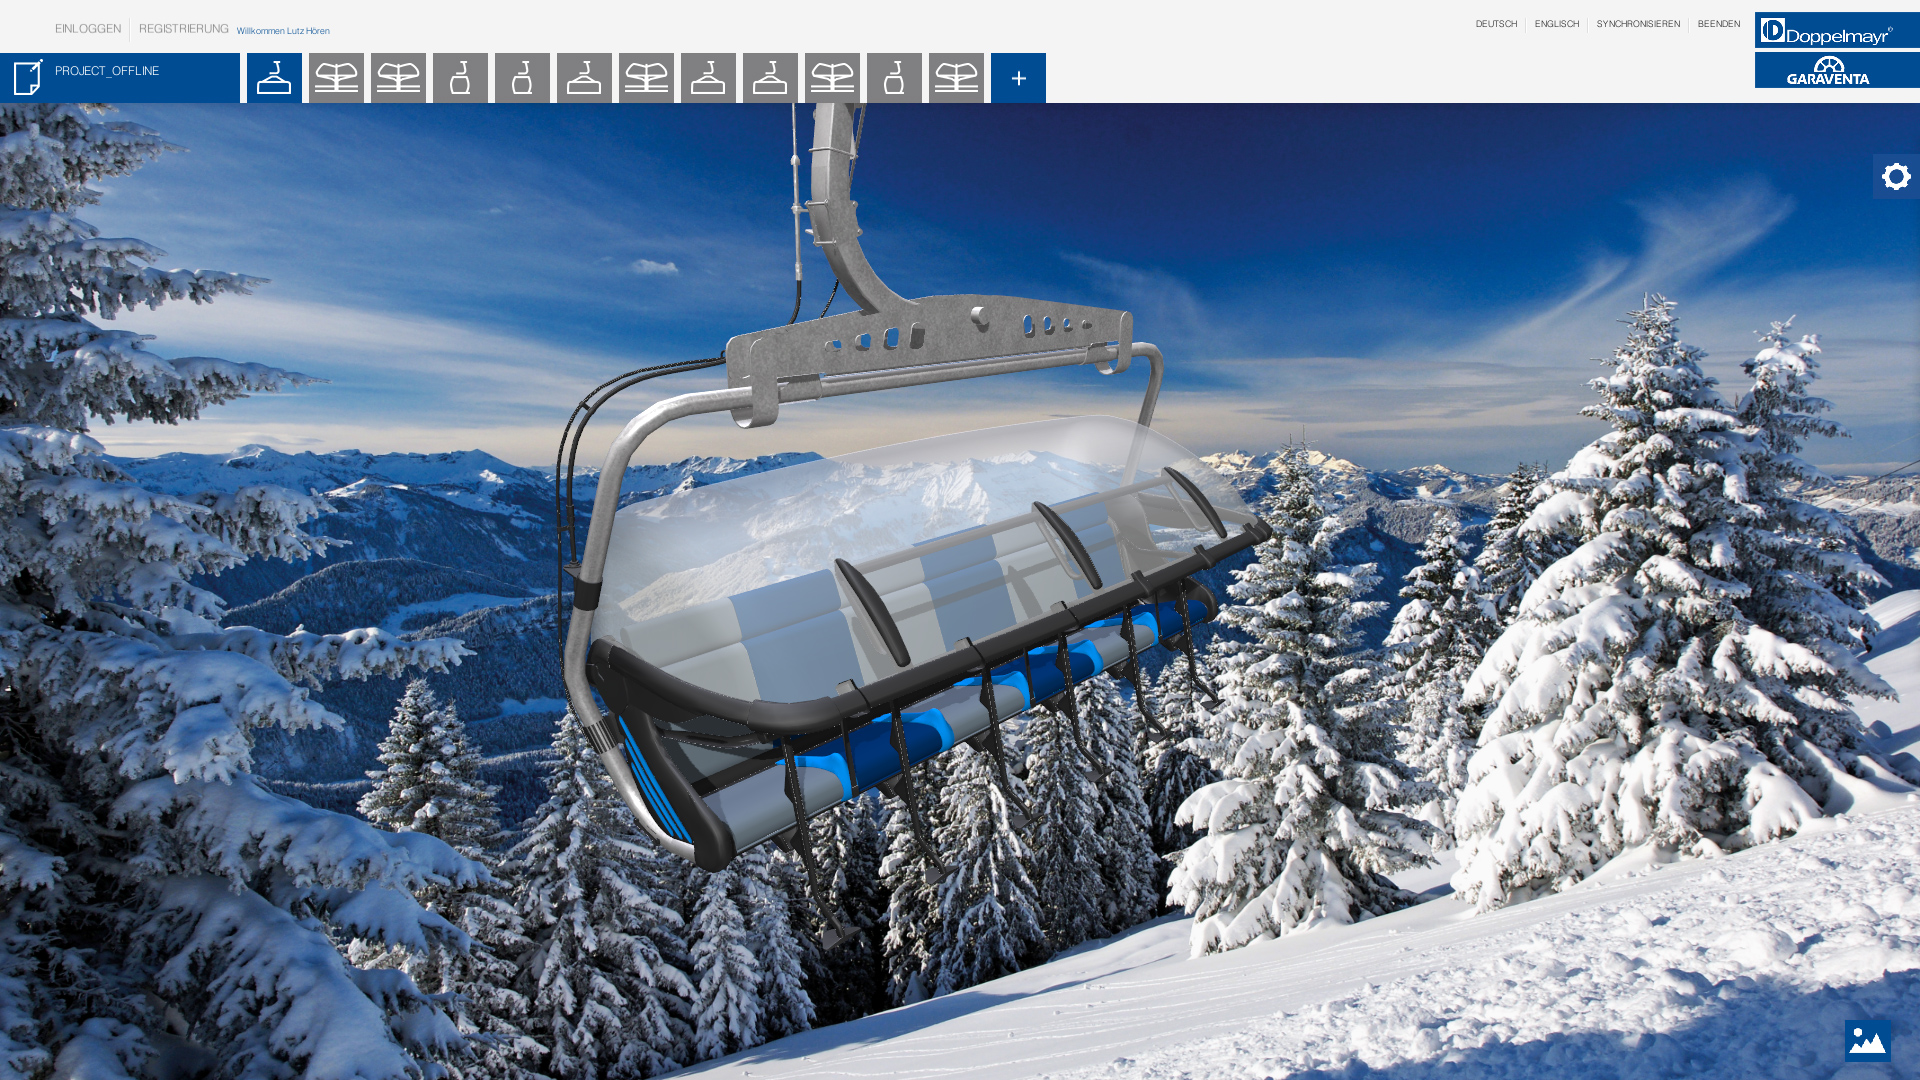 doppelmayr unity ropeway configurator maximum project number